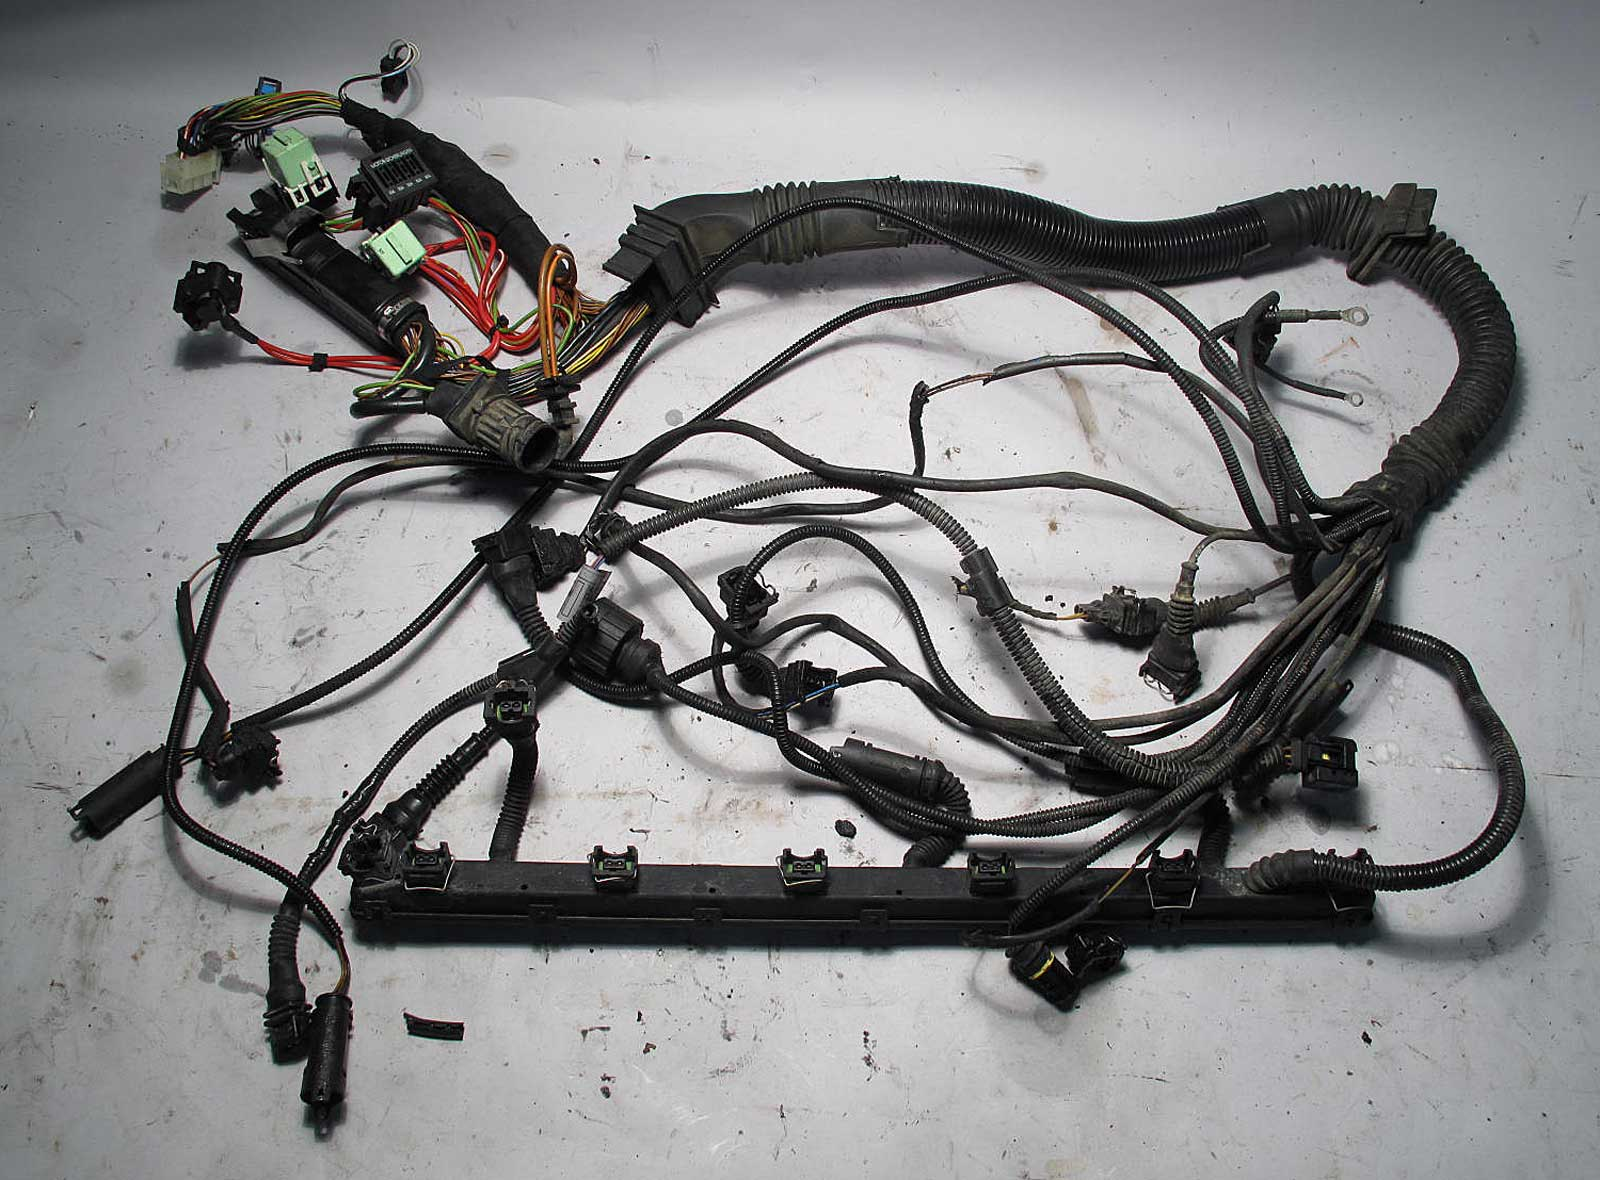 bmw e39 1998 528i 5 spd manual engine wiring harness complete m52 used oem ebay. Black Bedroom Furniture Sets. Home Design Ideas